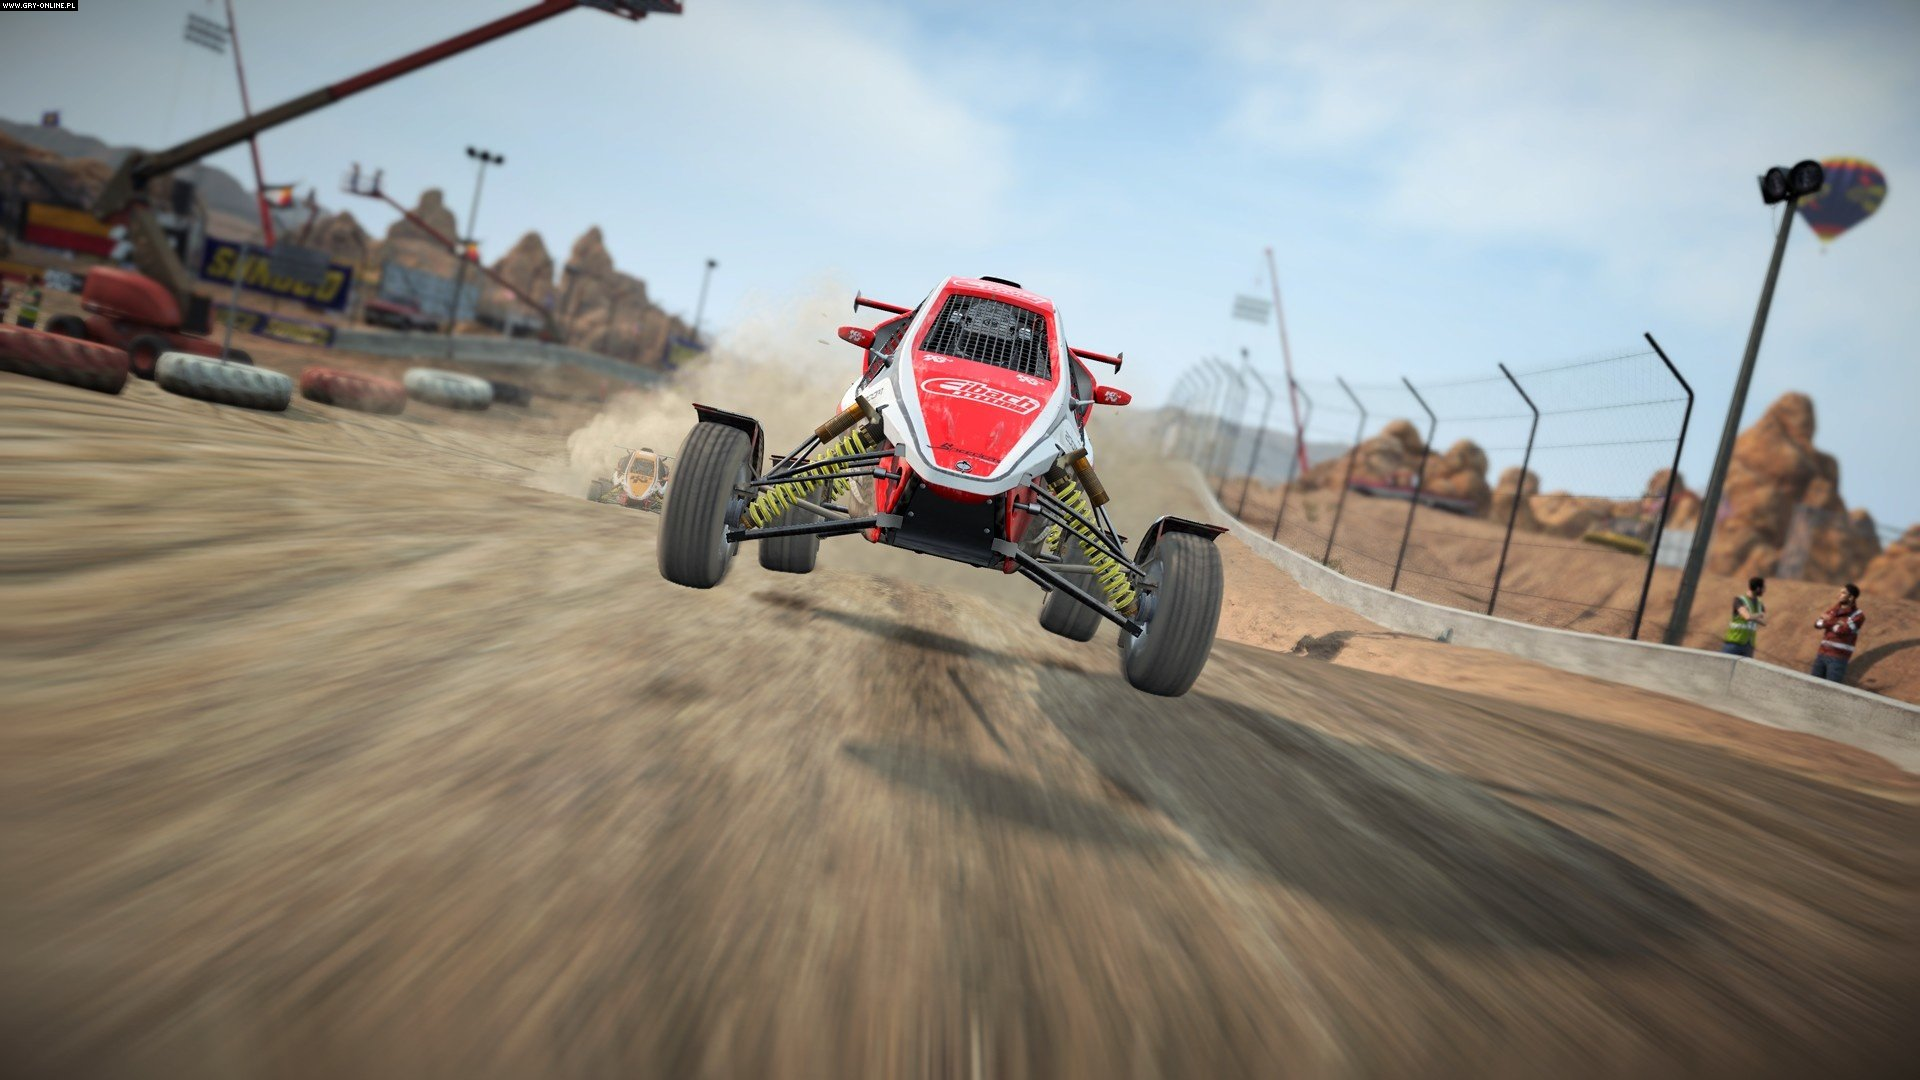 DiRT 4 PC, PS4, XONE Games Image 9/66, Codemasters Software